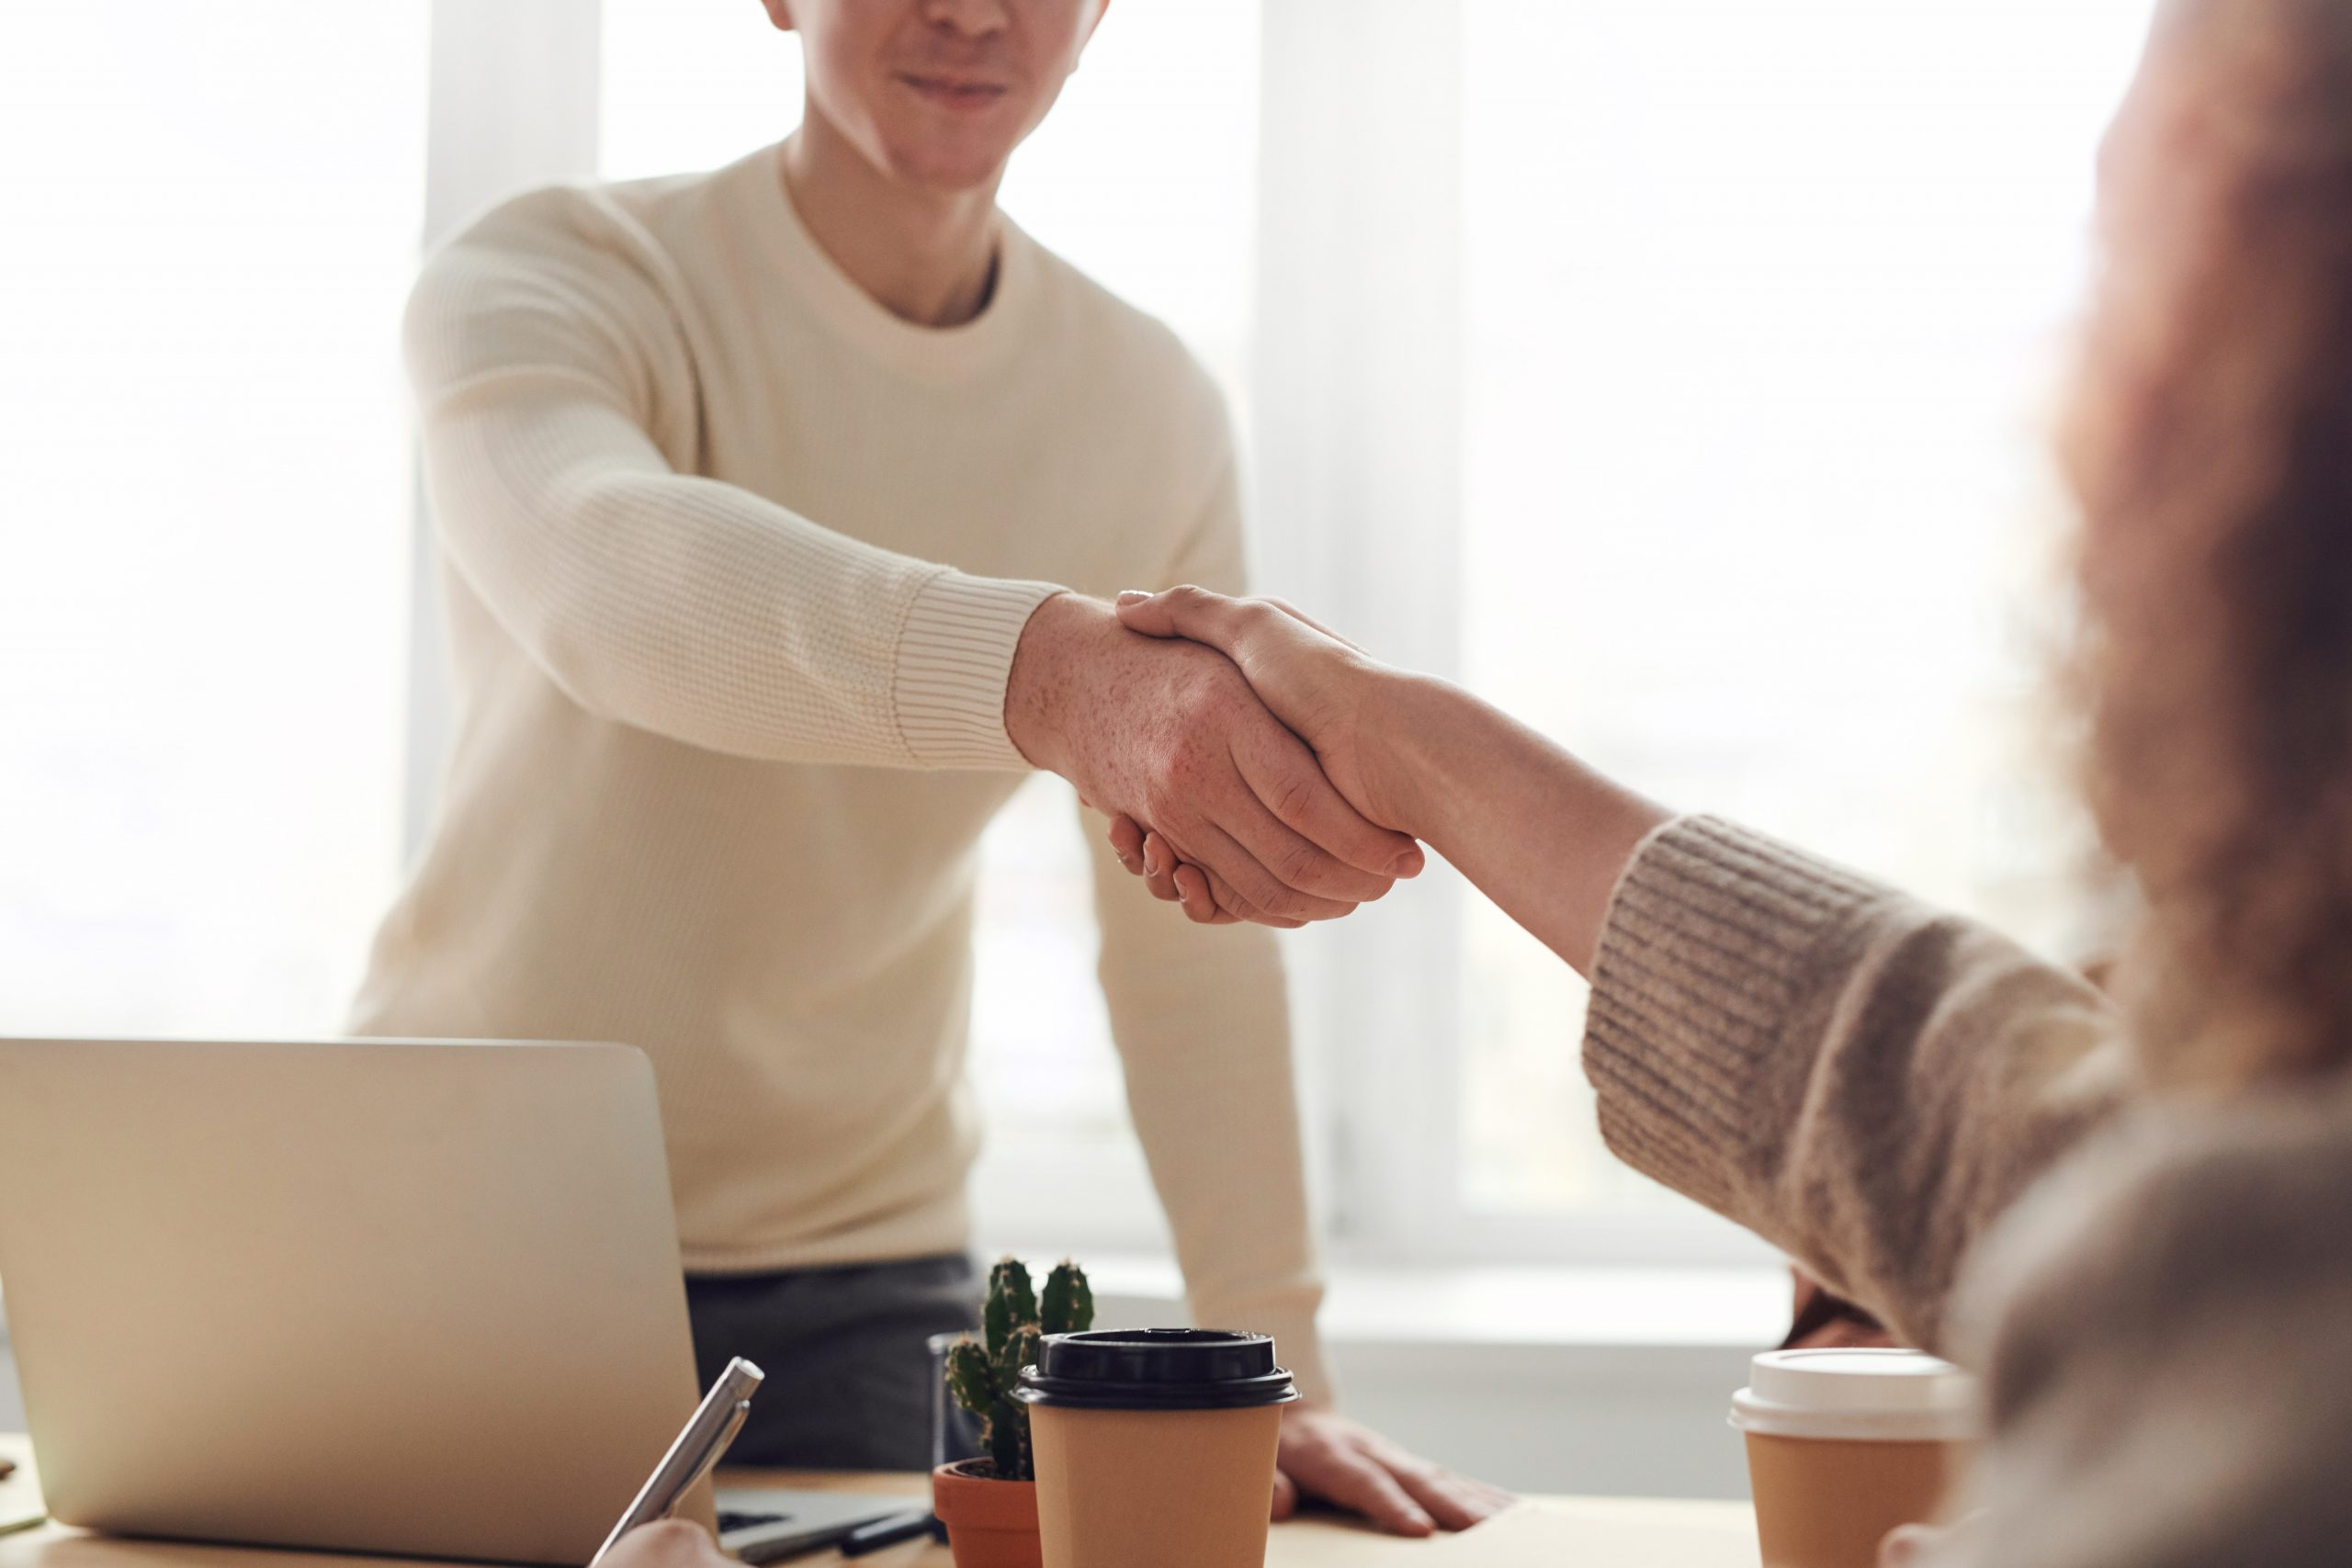 Two people meeting and shaking hands